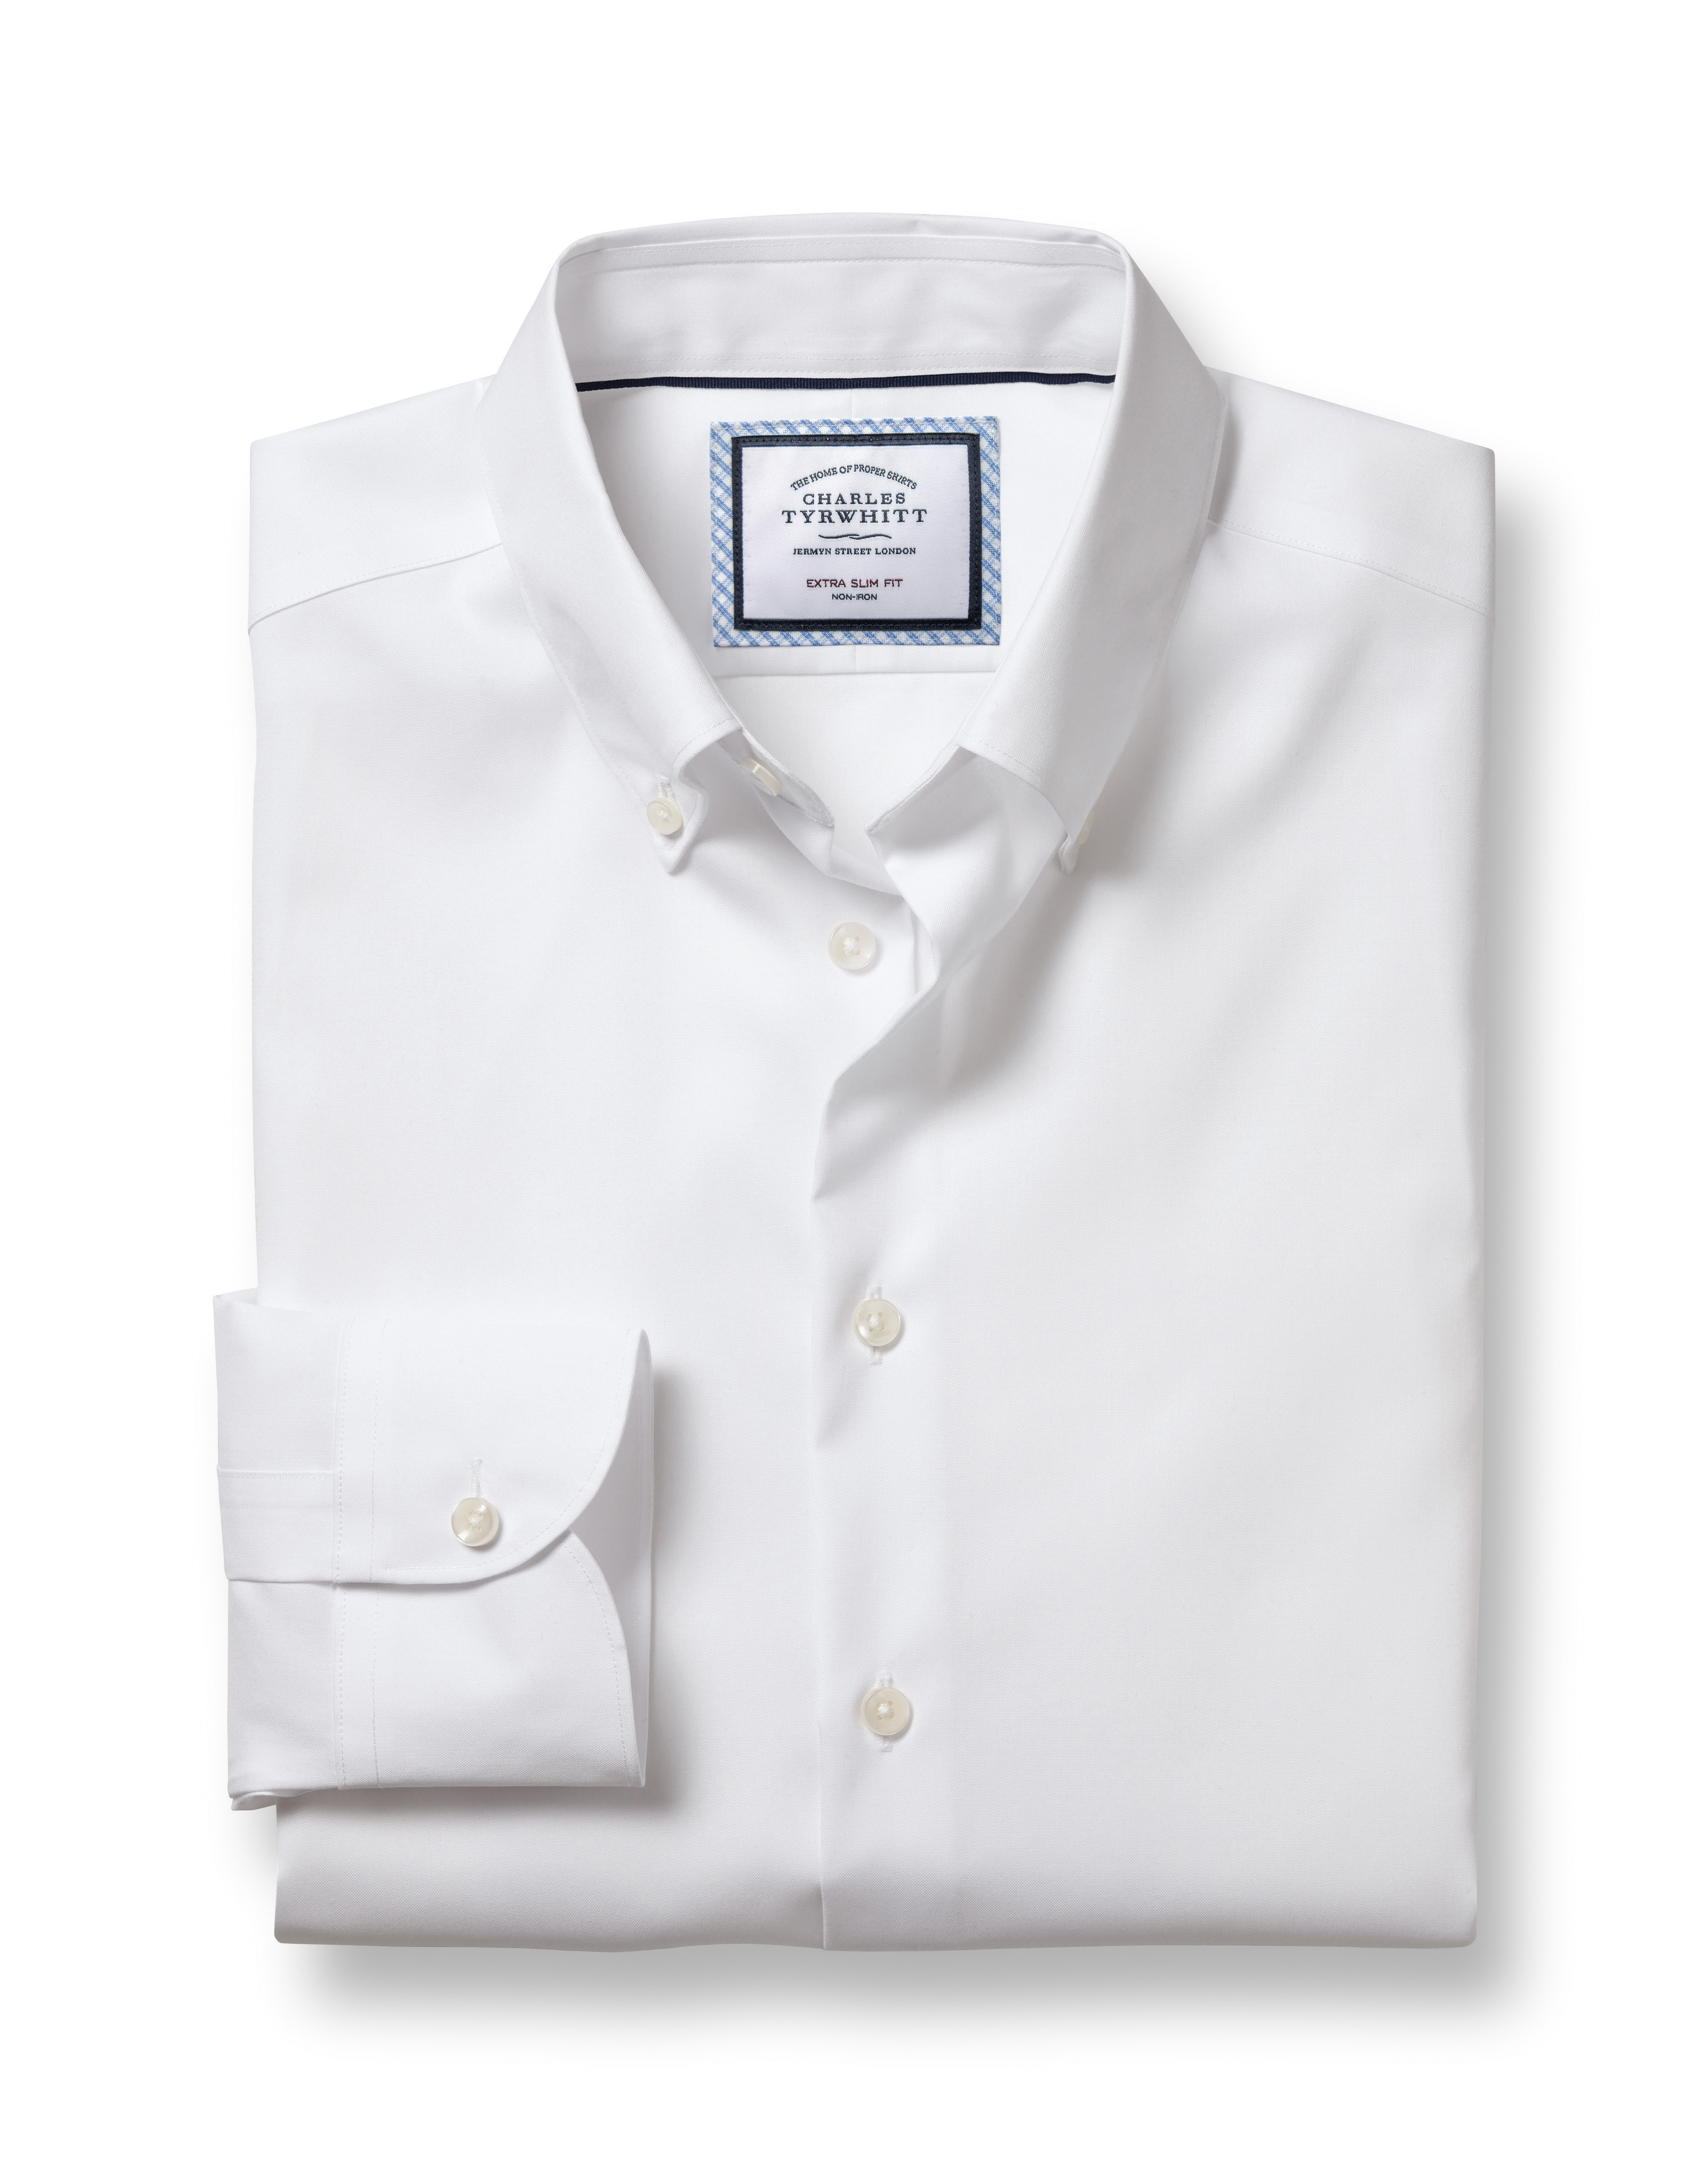 Extra Slim Fit Button-Down Business Casual Non-Iron White Cotton Formal Shirt Single Cuff Size 17/34